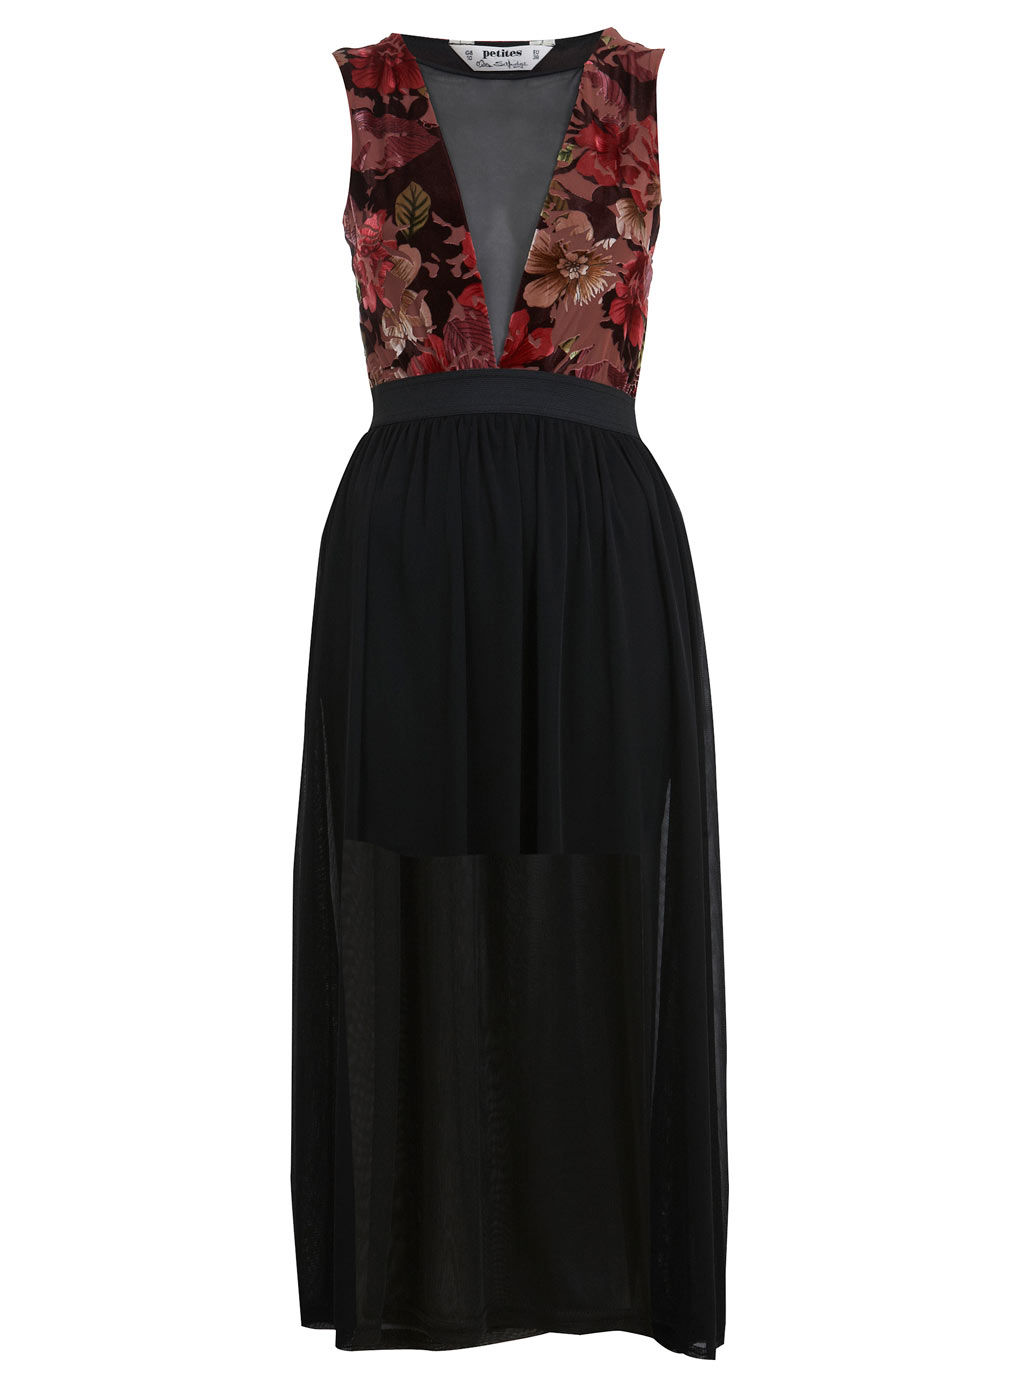 Best Petite Maxi Dresses 2012   Maxi Dresses With Style